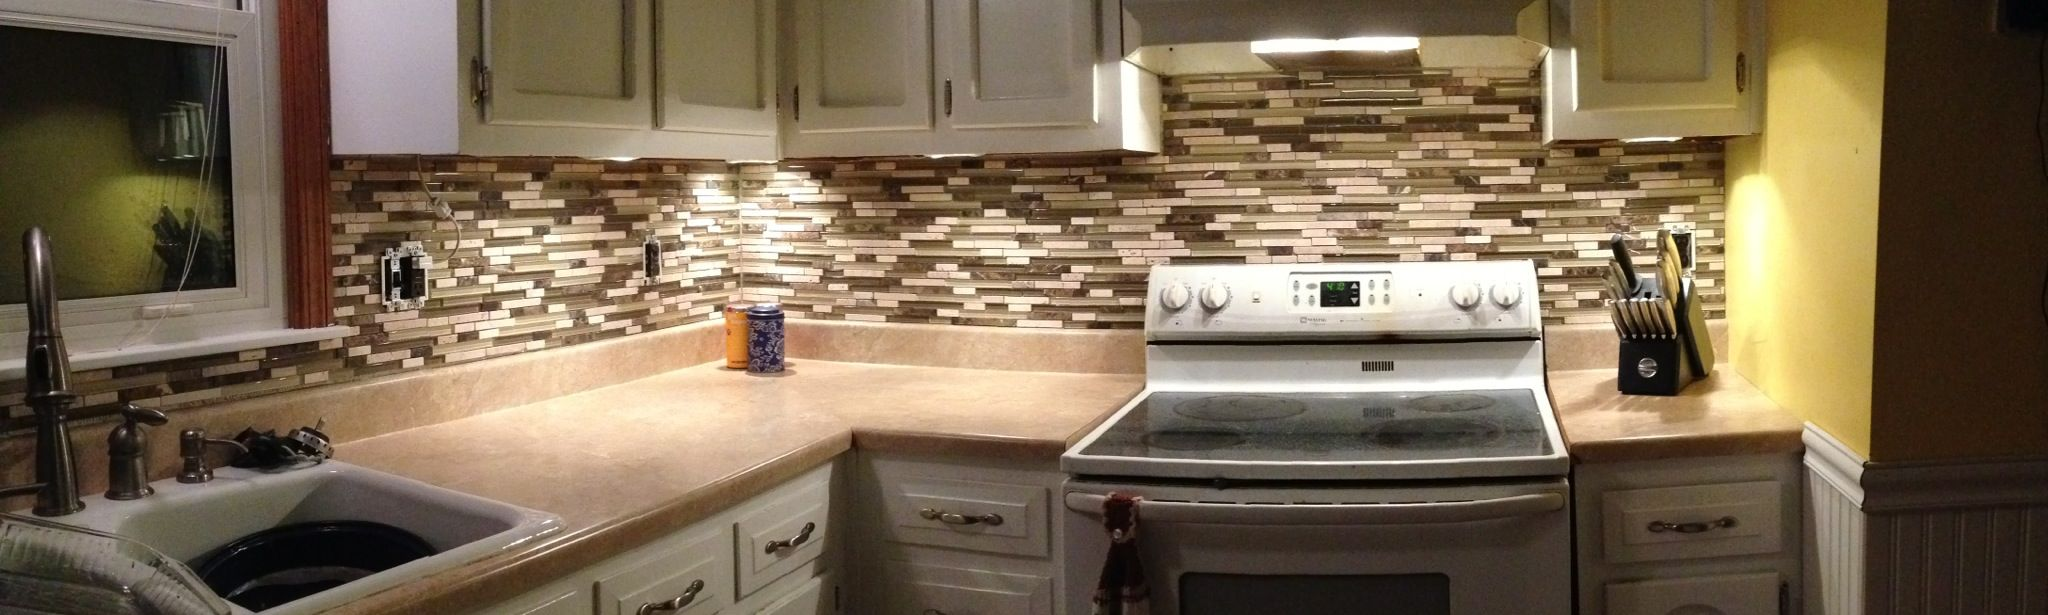 Mosaic Tile Backsplash From Costco Glass Mosaic Tiles Mosaic Glass Glass Tile